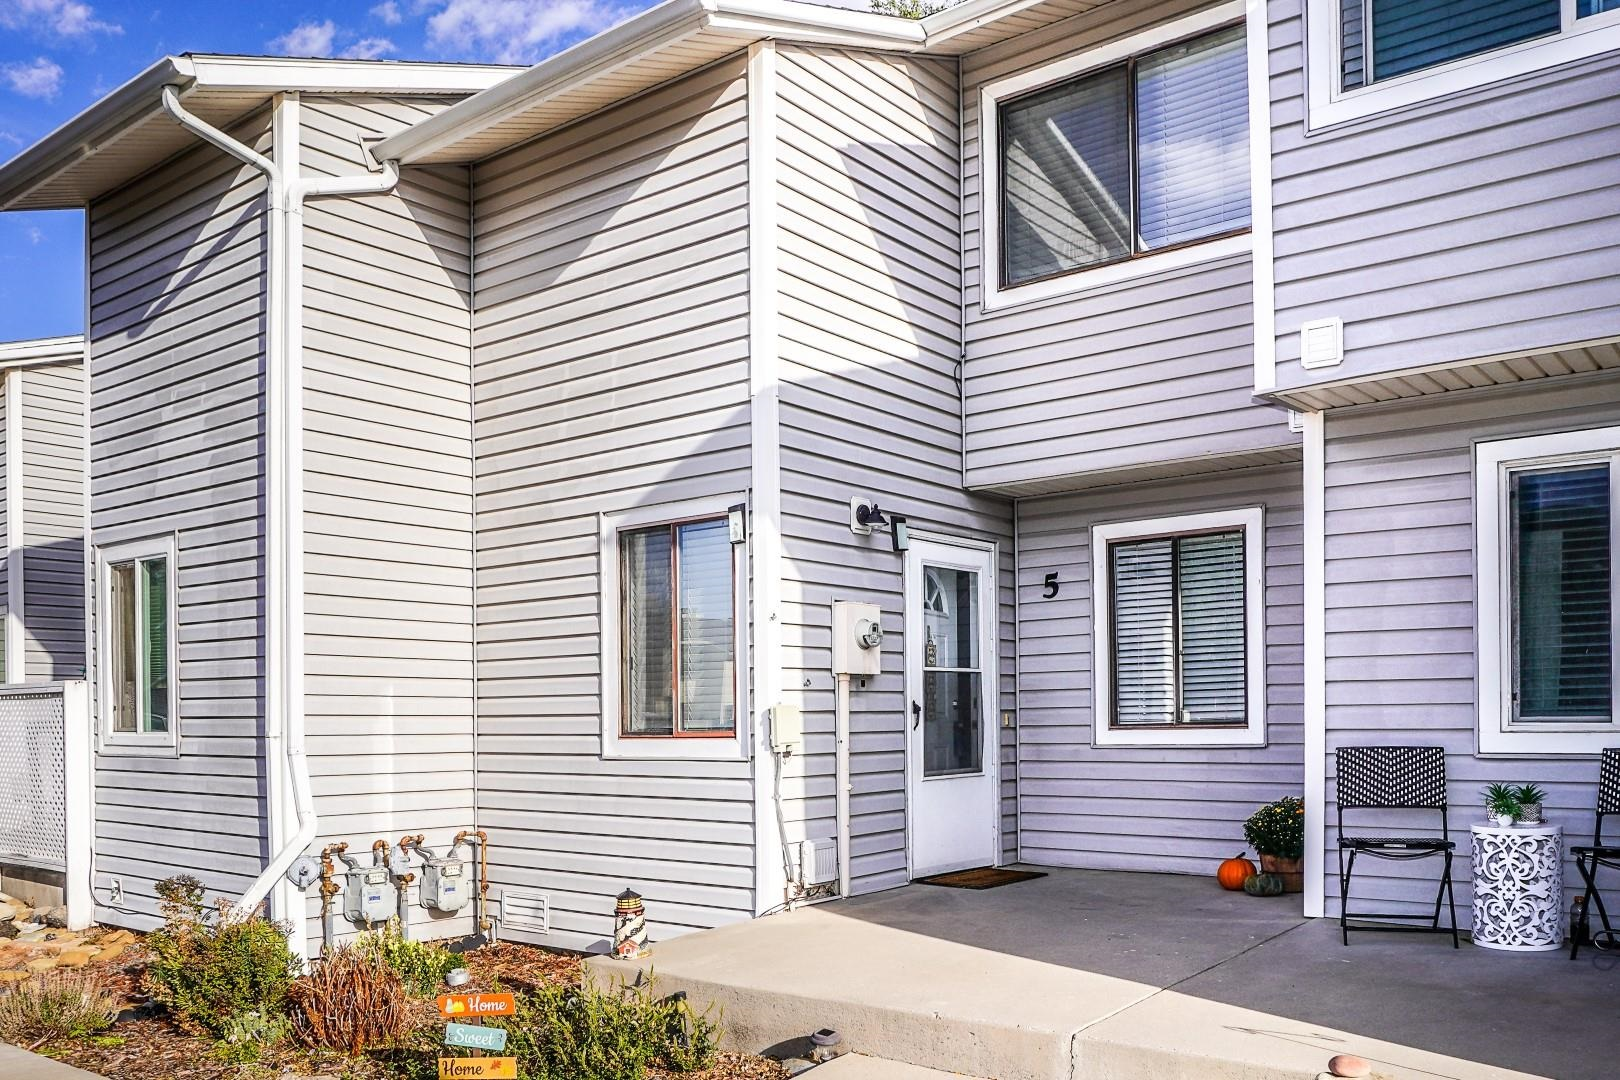 Absolutely adorable and updated Townhome.  So much to love here.  2 bed, 1 1/2 baths, small fenced private back yard with pleasant patio and a storage closet. Stackable washer/dryer right in your own unit!!  The larger bedroom has a huge walk-in closet!   Really lovely kitchen with solid surfaces and all appliances.  The HOA dues are $146 per month and include your water, sewer, trash, park/play area, exterior maintenance, exterior insurance, and 2 assigned parking spaces right out front! Please submit offers by Monday Sep 27th at 2pm, and make acceptance by Tuesday Sep 28th at 10am.